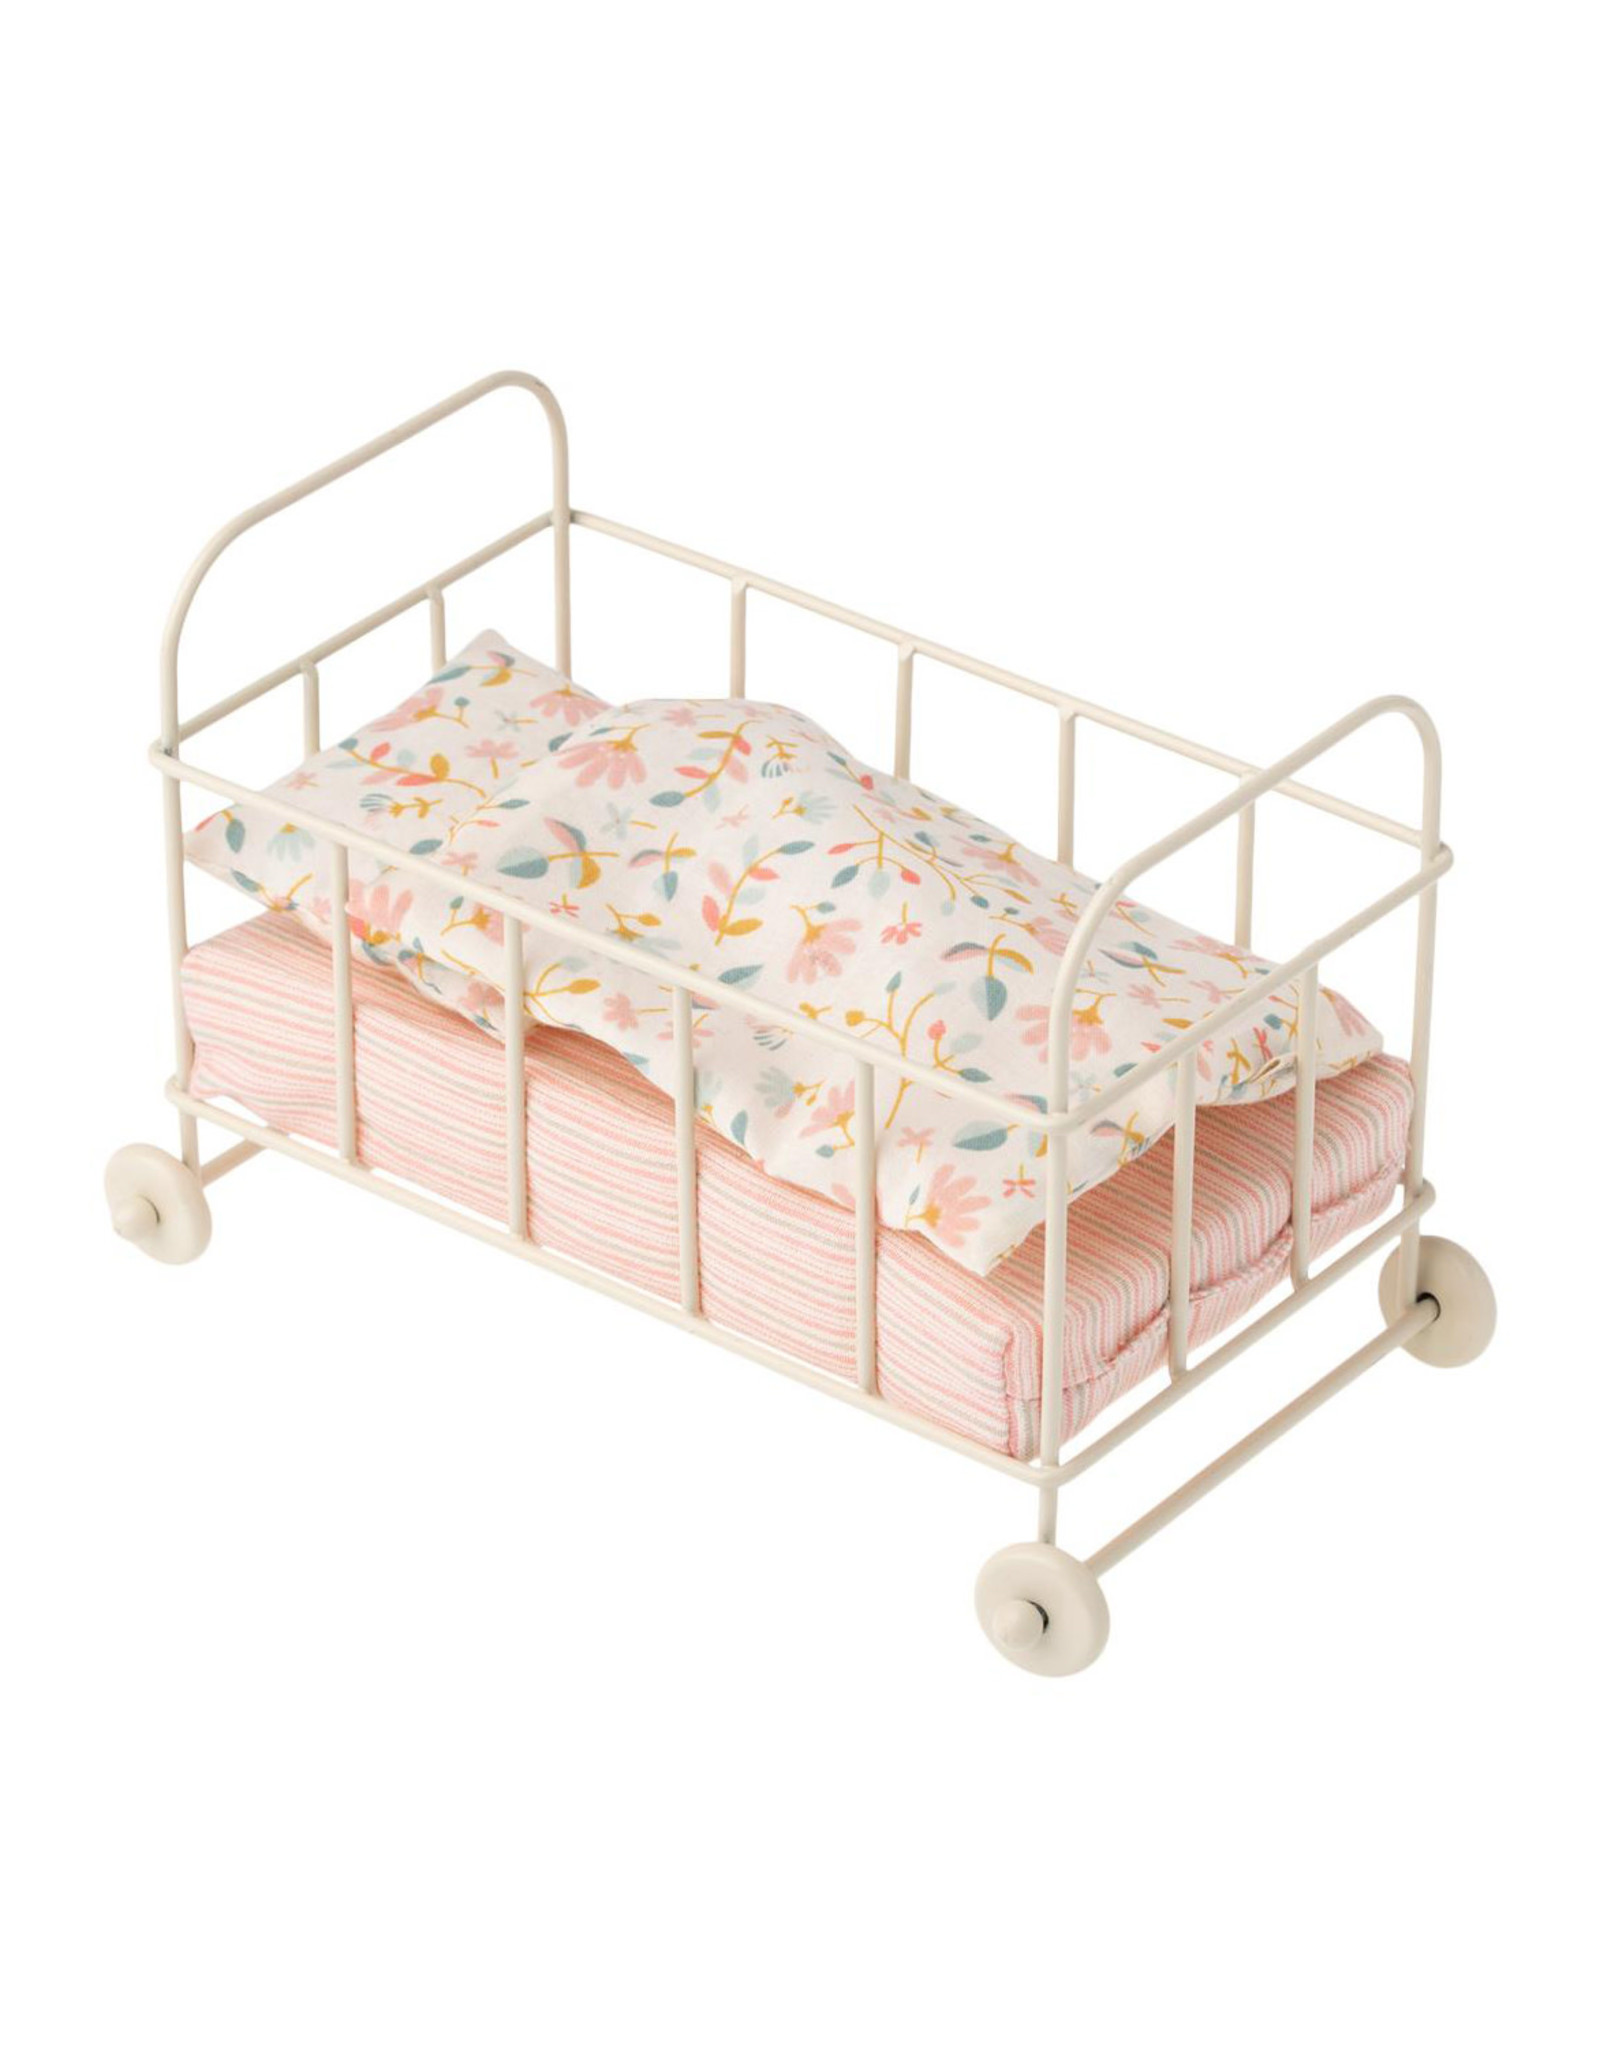 Maileg Metal Cot - Light Pink with Floral